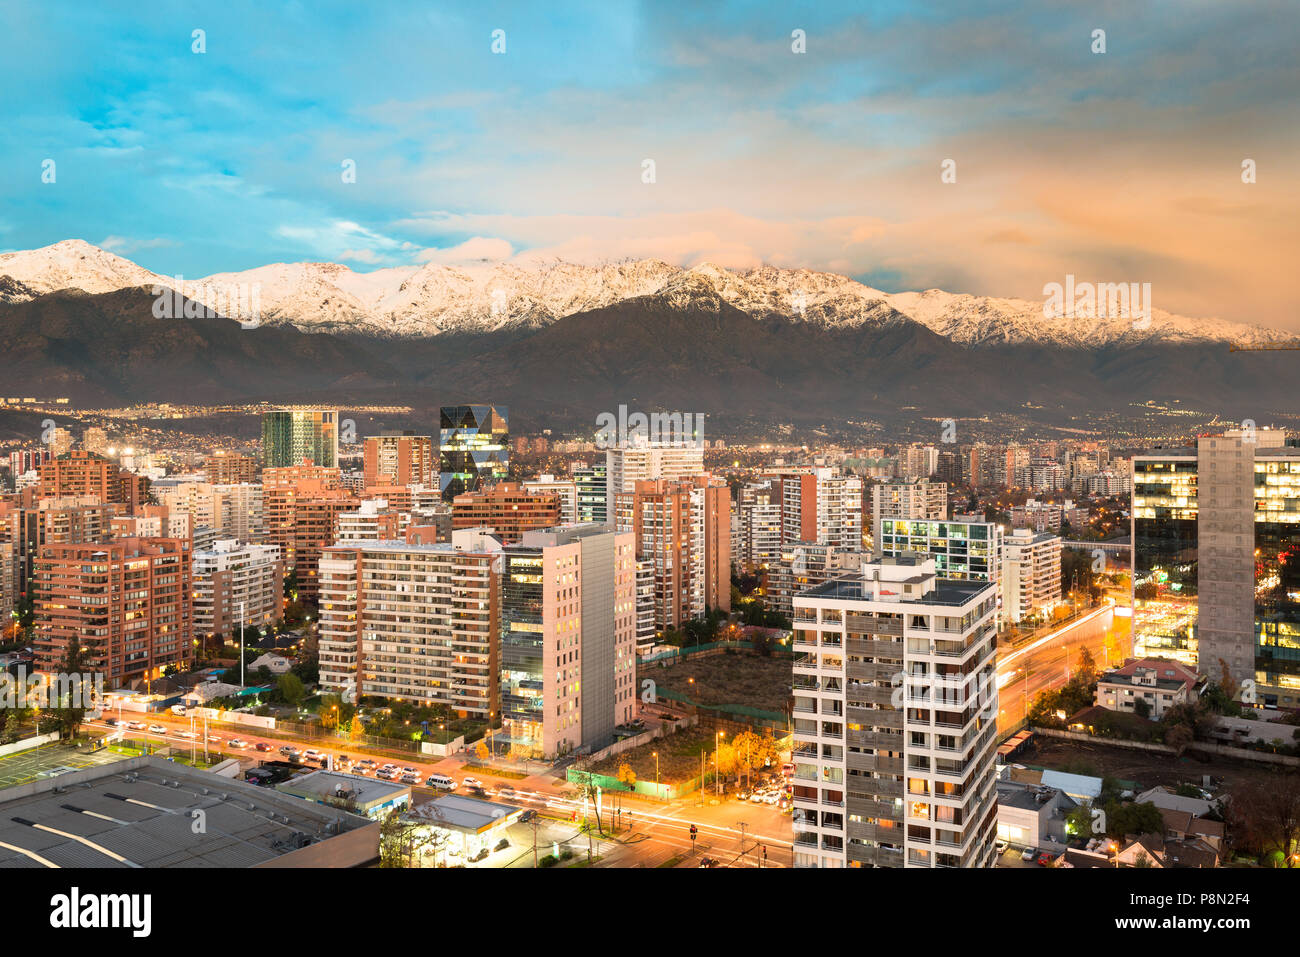 Apartment buidings in the wealhty district of Las Condes with The Andes mountain Range in the back, Santiago de Chile - Stock Image